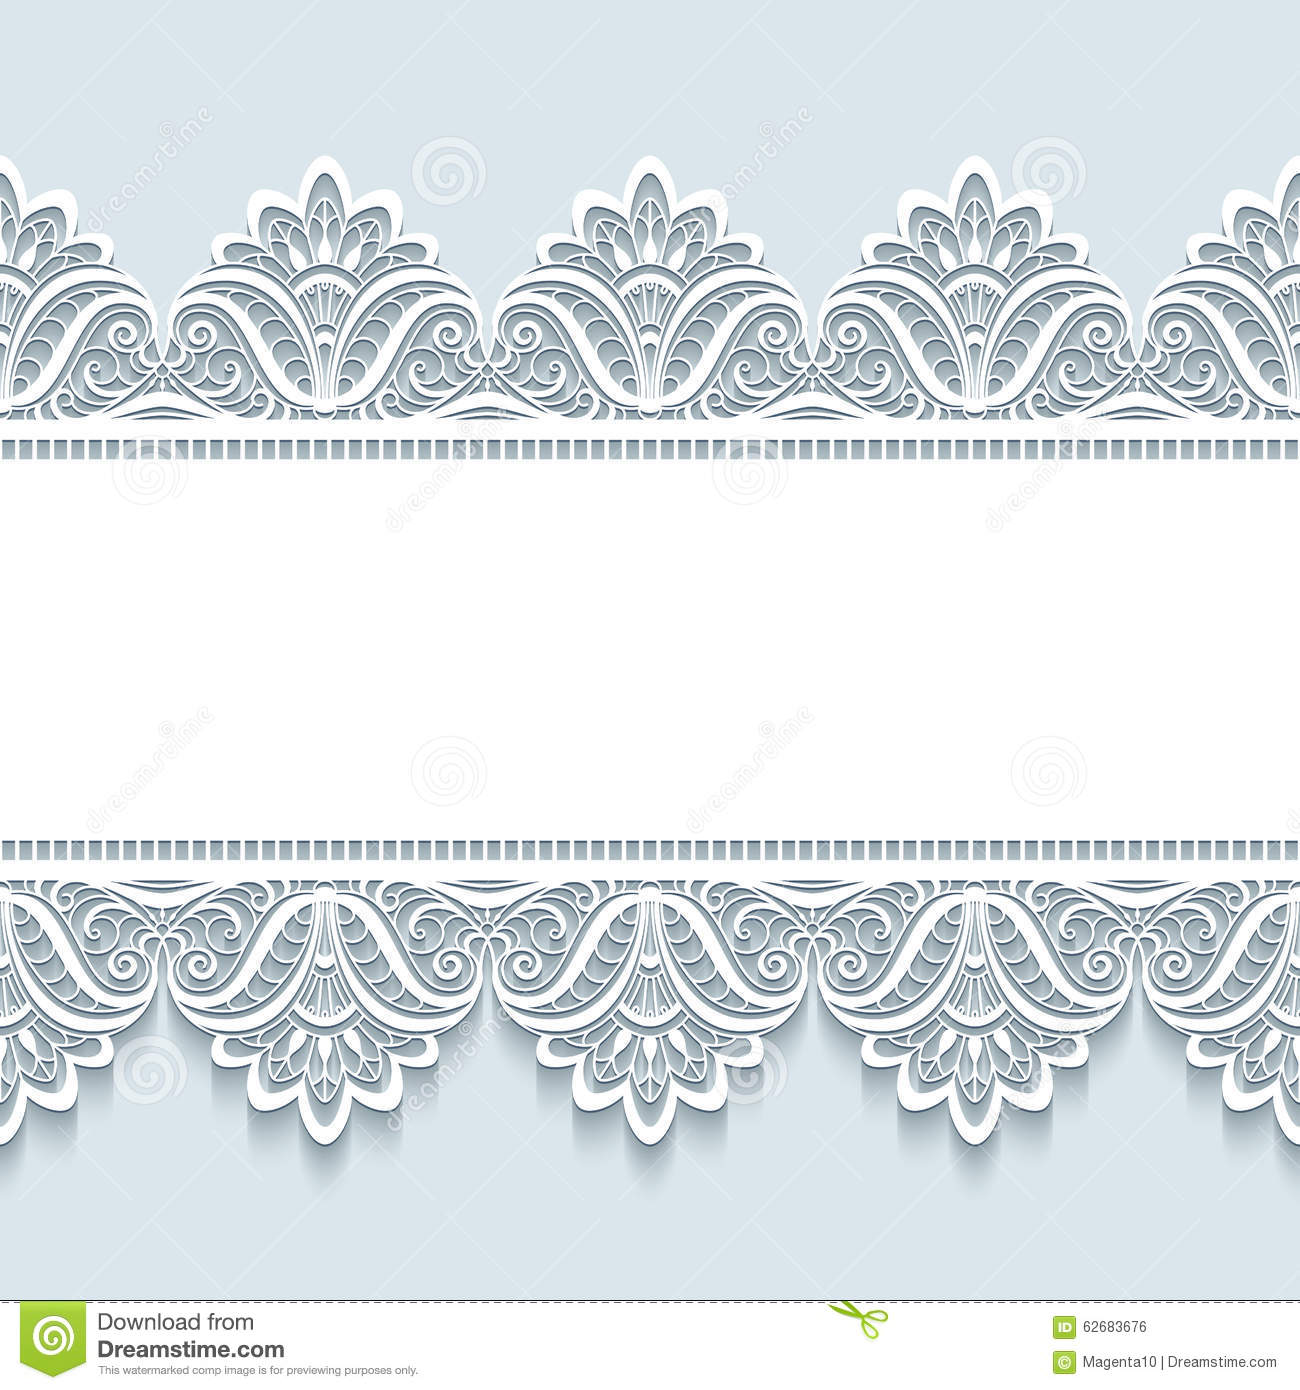 Vintage Lace Background With Seamless Borders